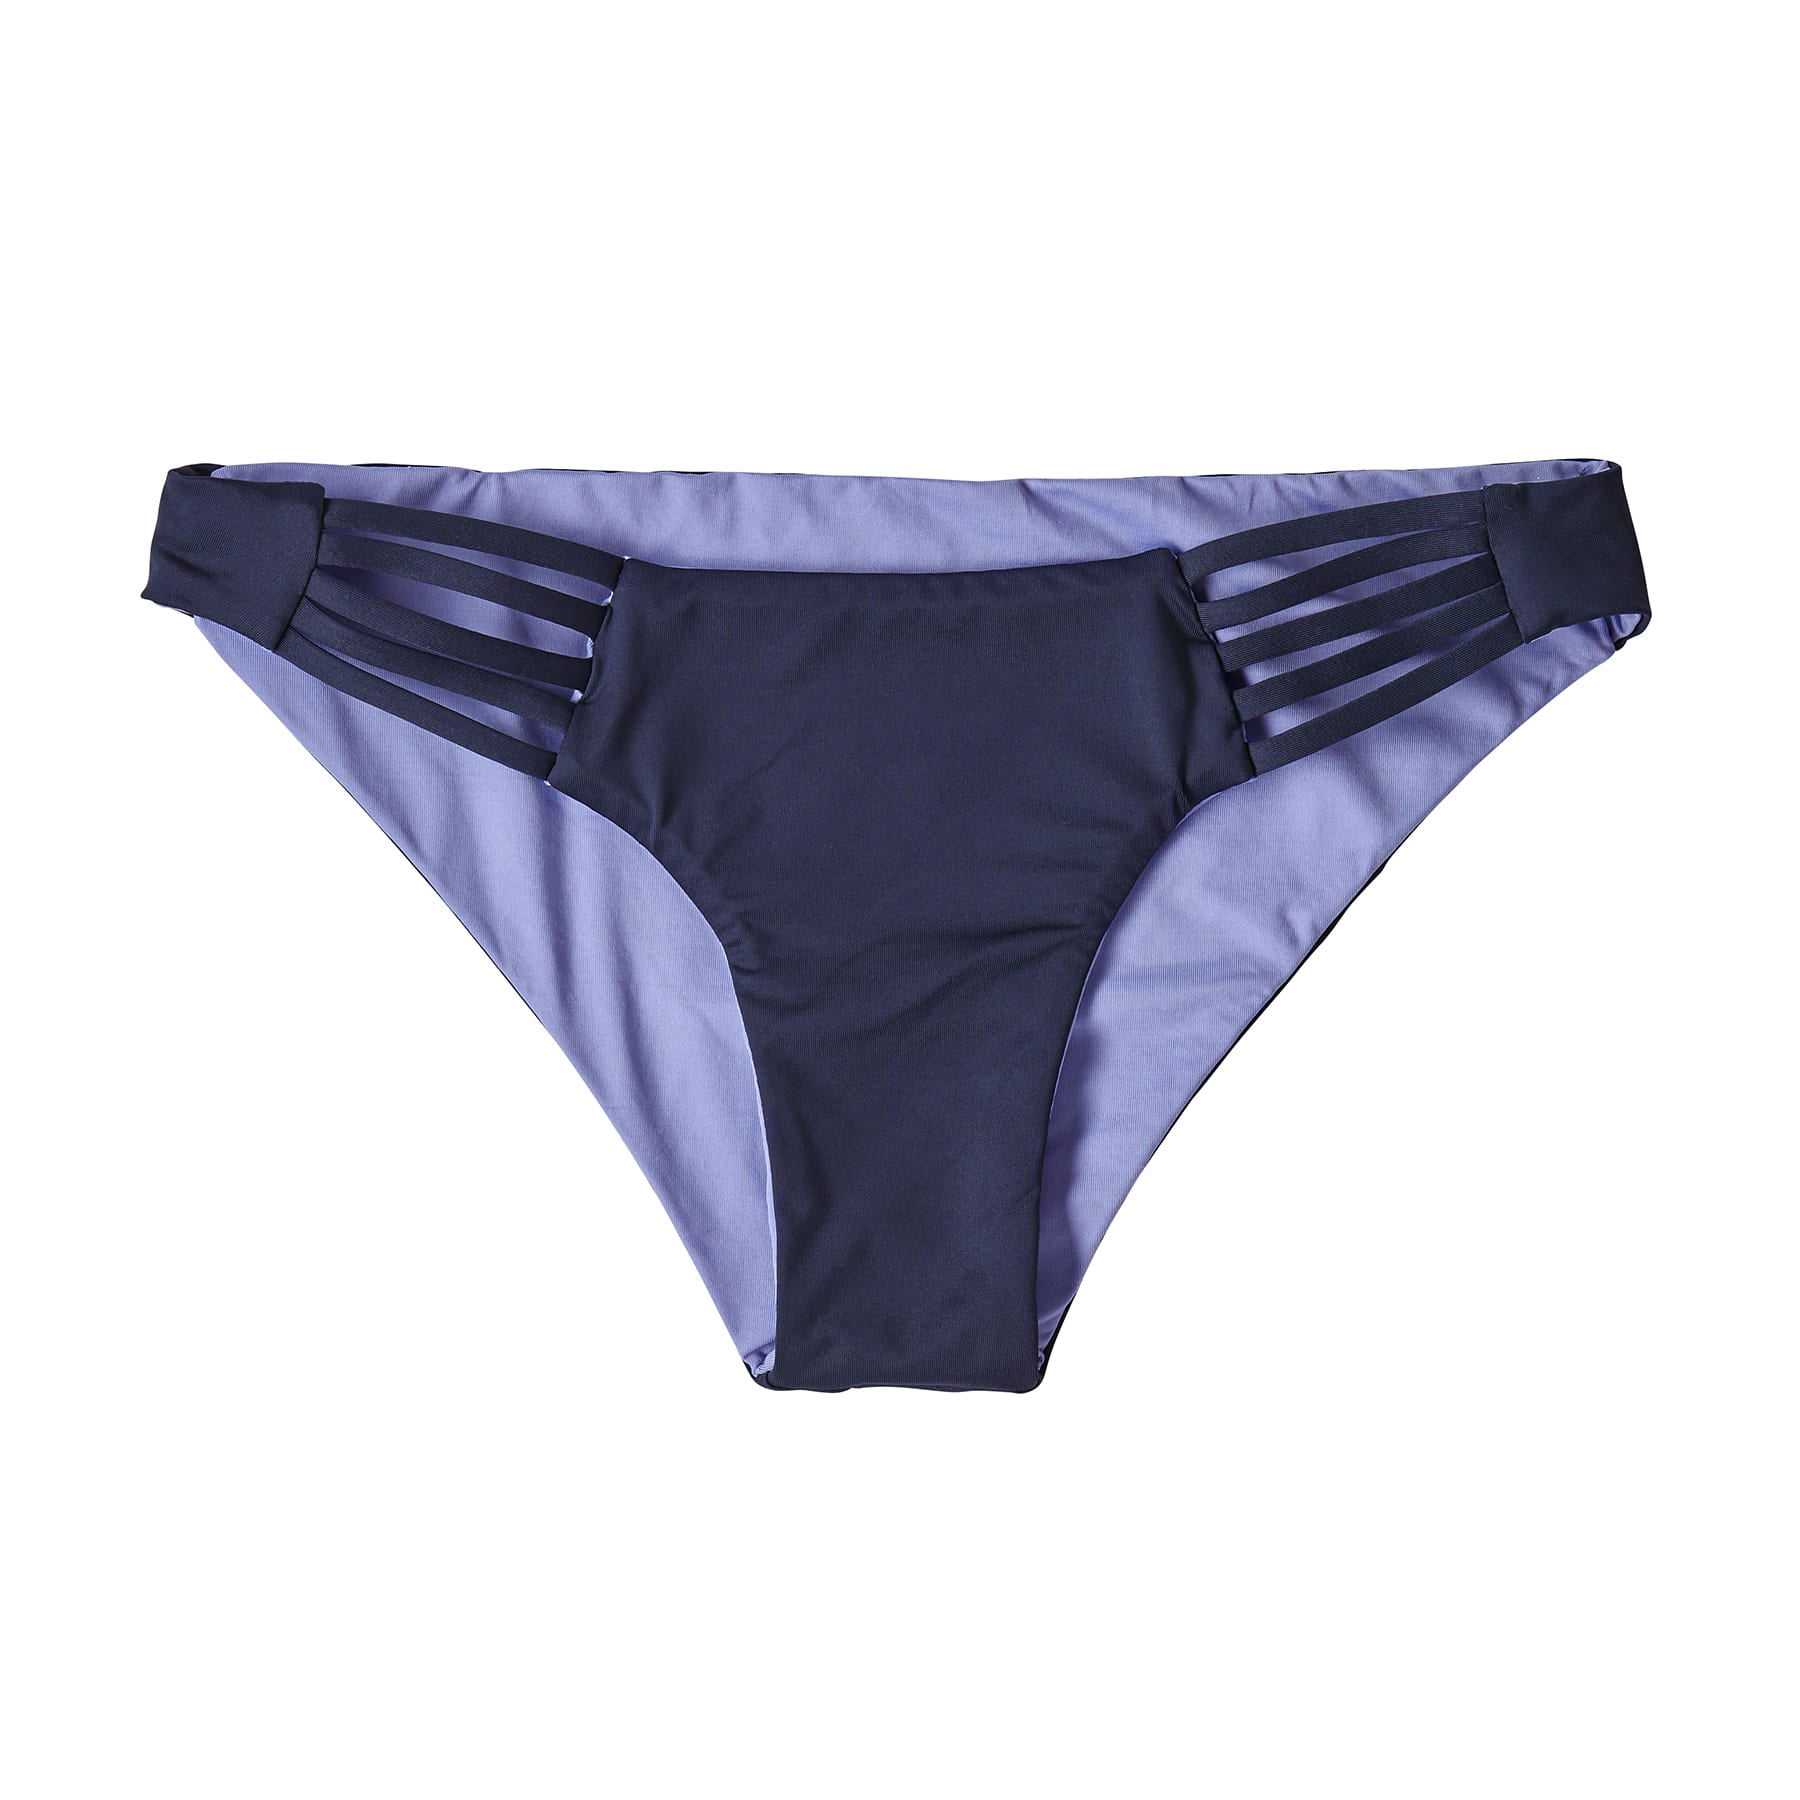 a41f196bc4 Buy Patagonia Women's Reversible Seaglass Bay Bottoms from Outnorth